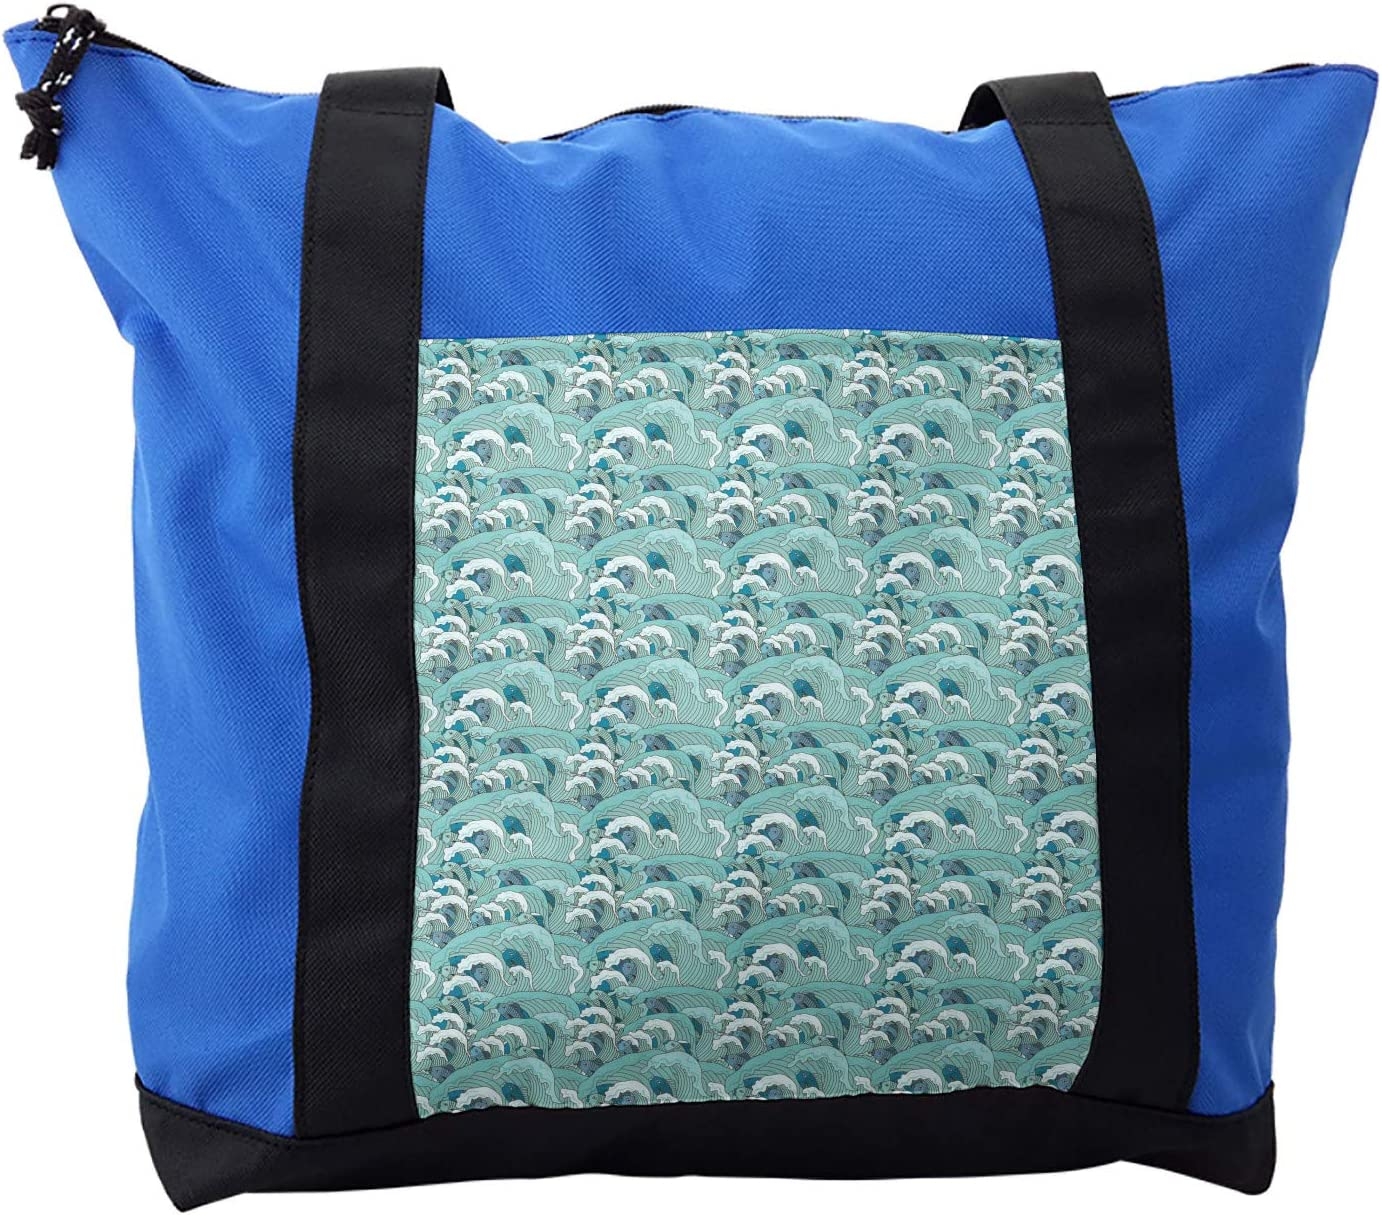 Lunarable Exotic Shoulder Bag, Ocean Waves with Fish, Durable with Zipper